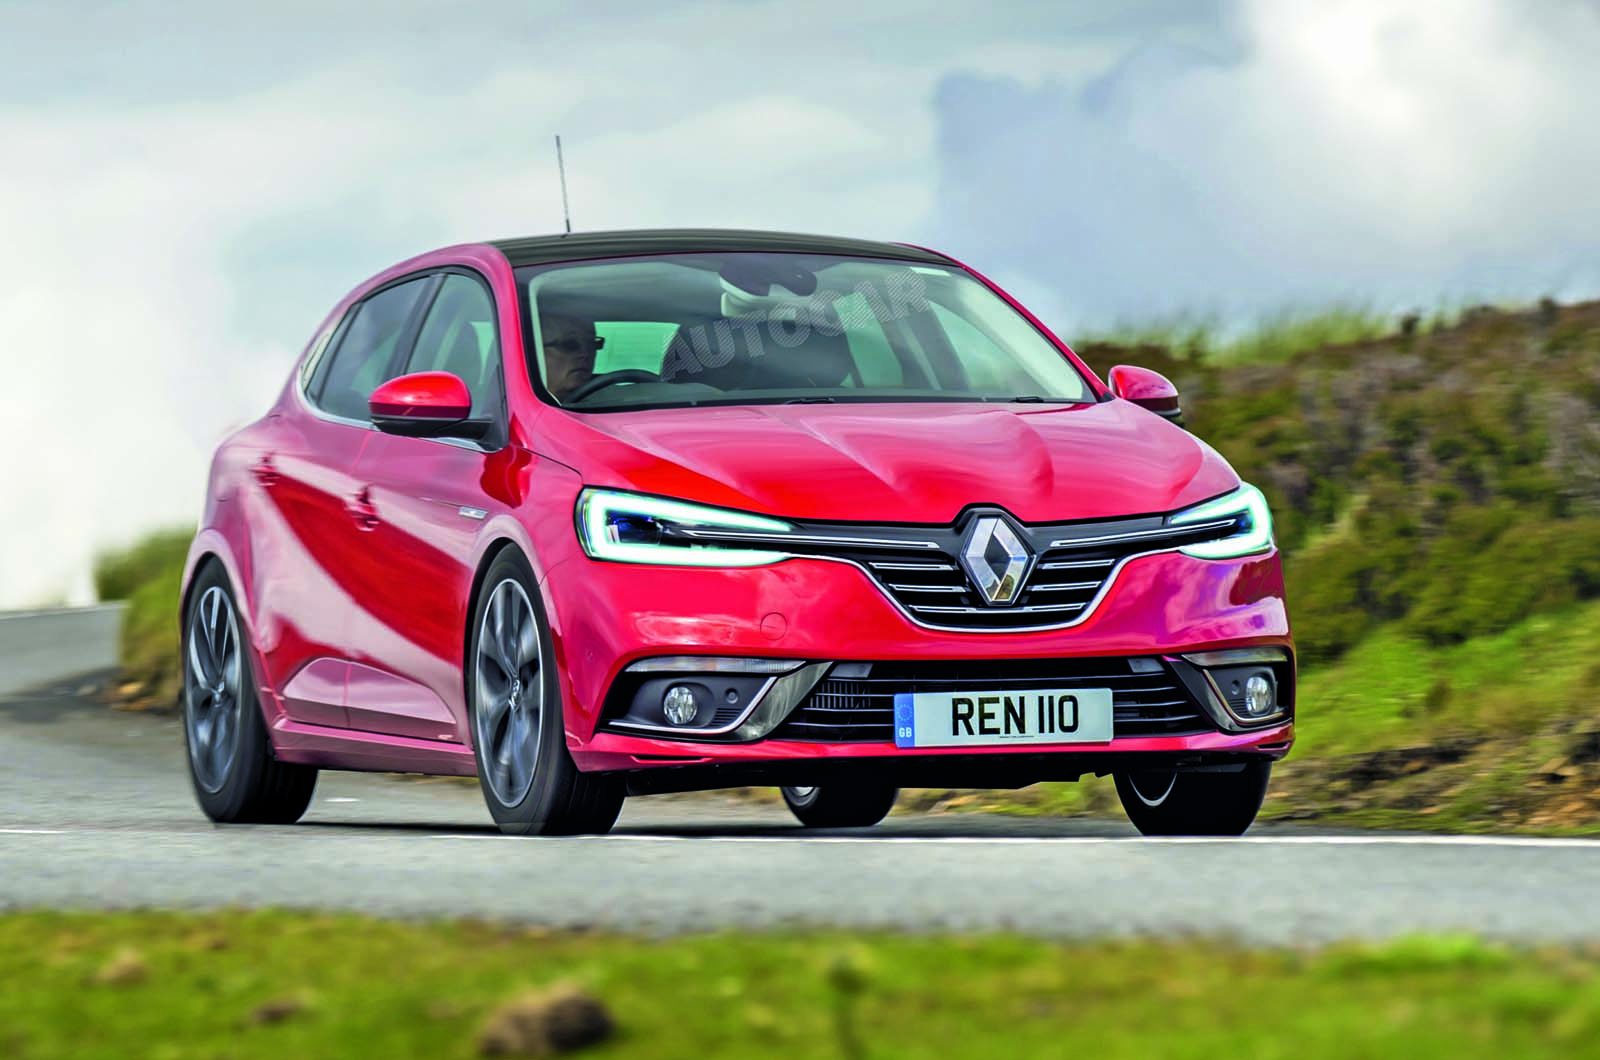 27 All New 2019 Renault Clio Rs Prices with 2019 Renault Clio Rs